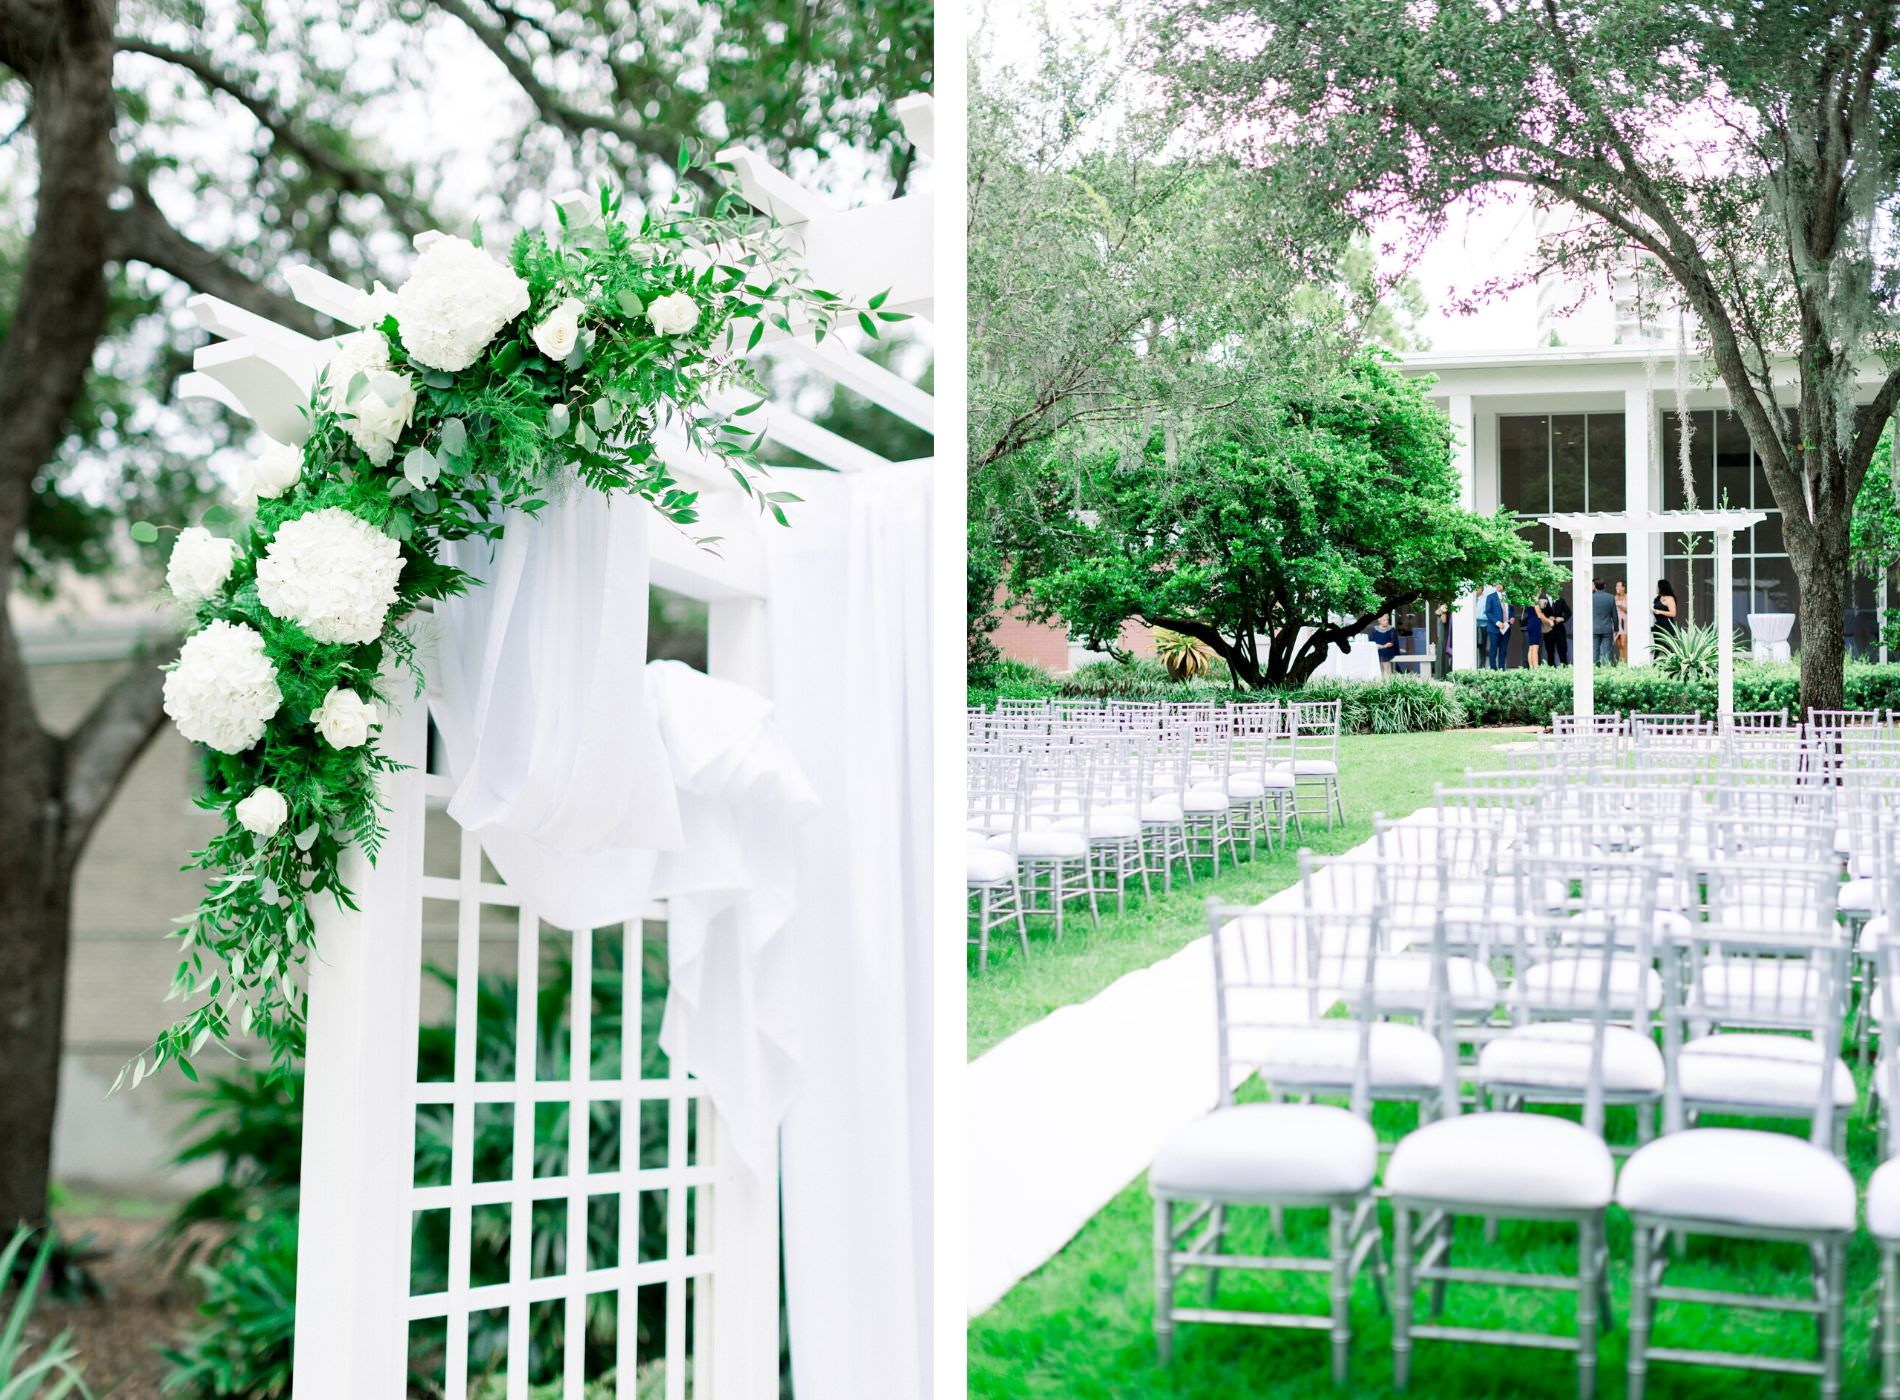 Garden-Glam Outdoor Wedding Ceremony Arbor Arch with White Draping, Hydrangeas, Roses and Greenery Floral Arrangements and Aisle Runner, Silver Chiavari Chairs | Wedding Venue Tampa Garden Club | Wedding Photographer Shauna and Jordon Photography